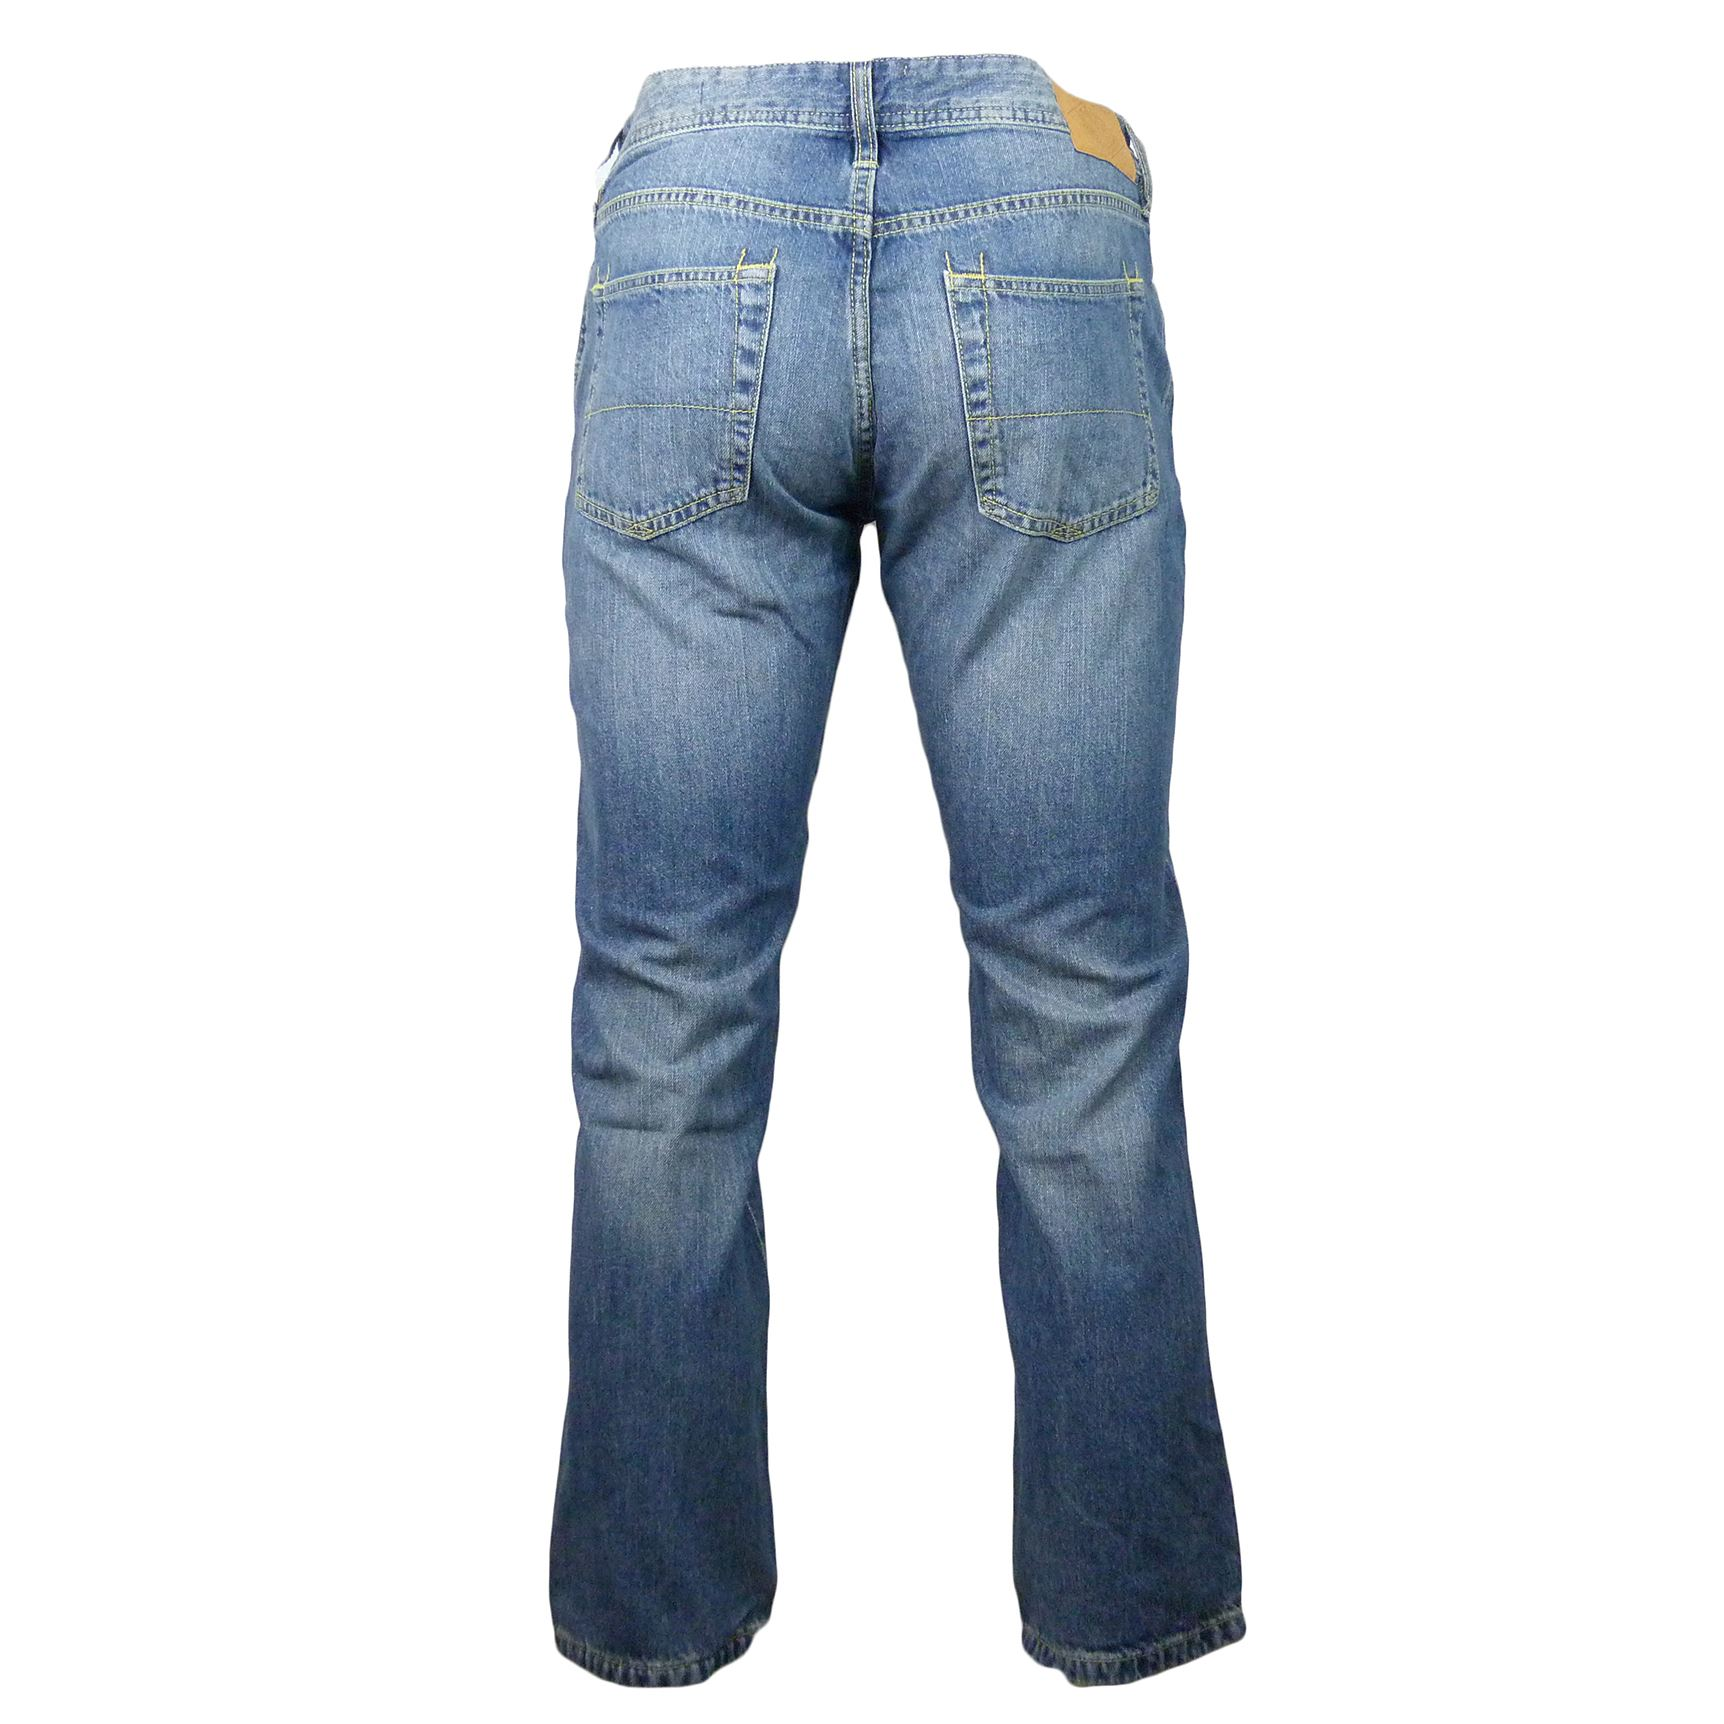 EX-M-amp-S-Marks-And-Spencer-Relaxed-Fit-Denim-Jeans thumbnail 3